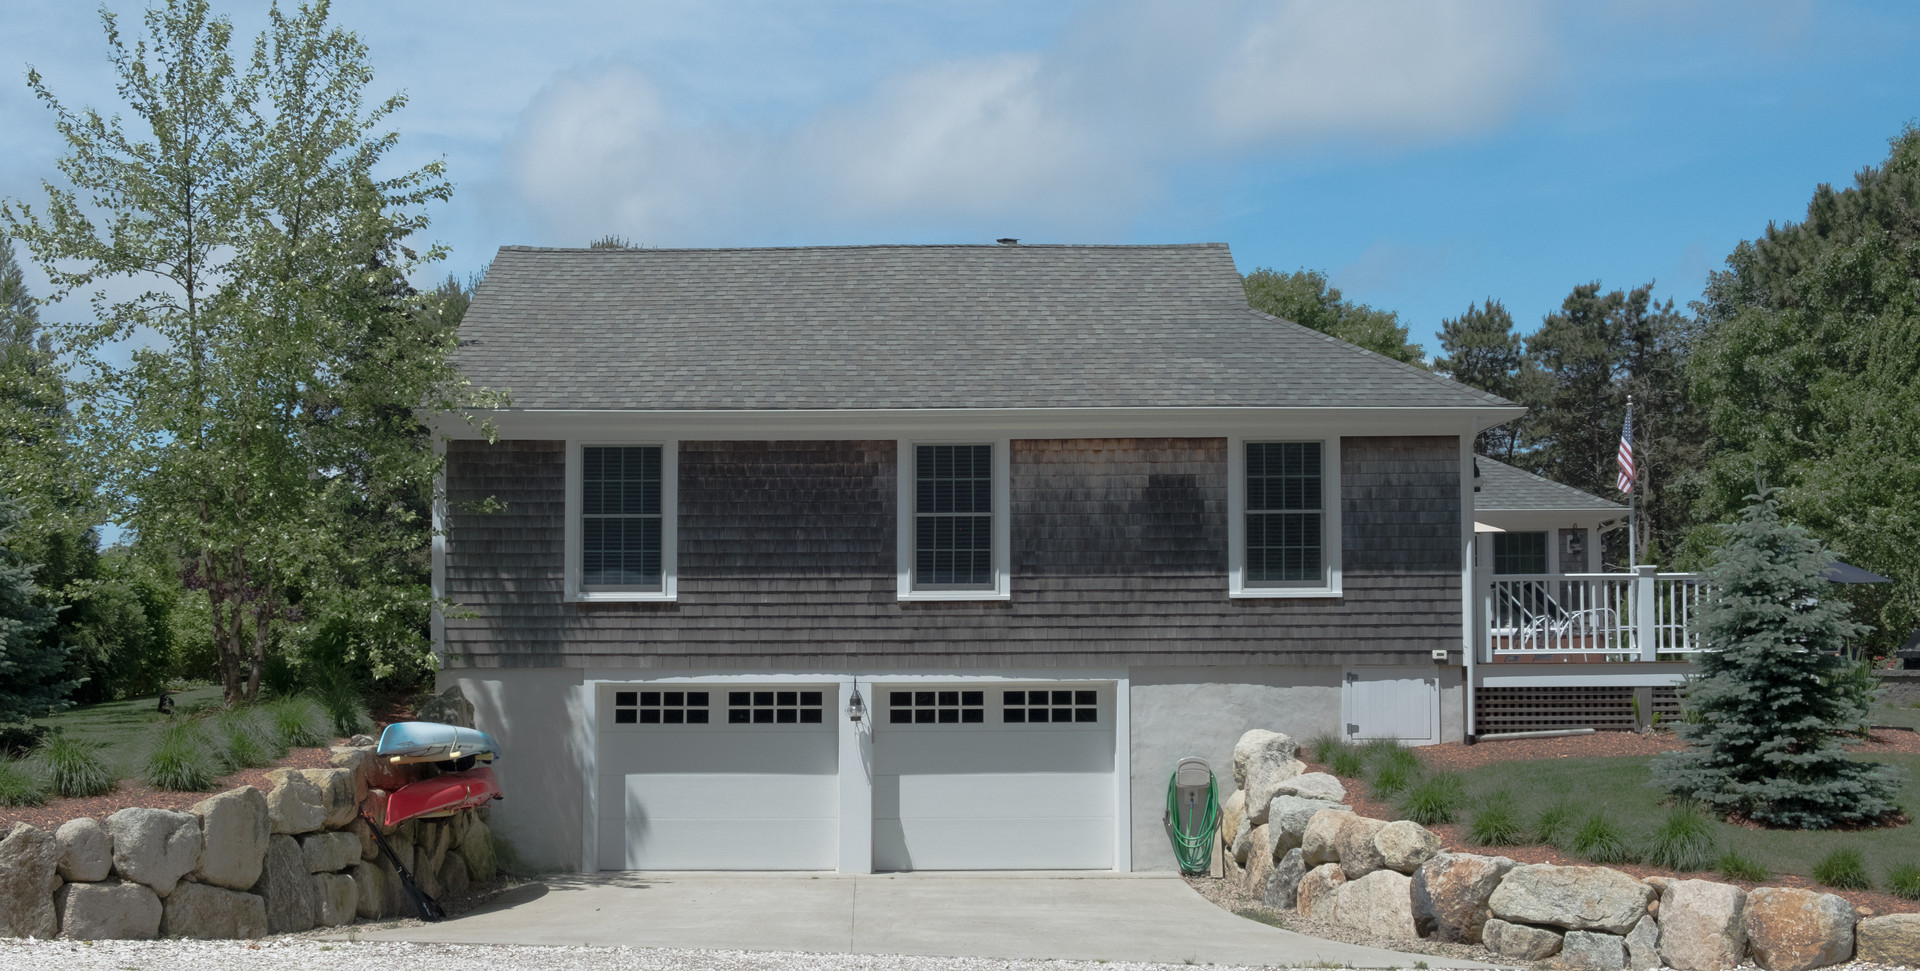 Cape Cod Home with a garage